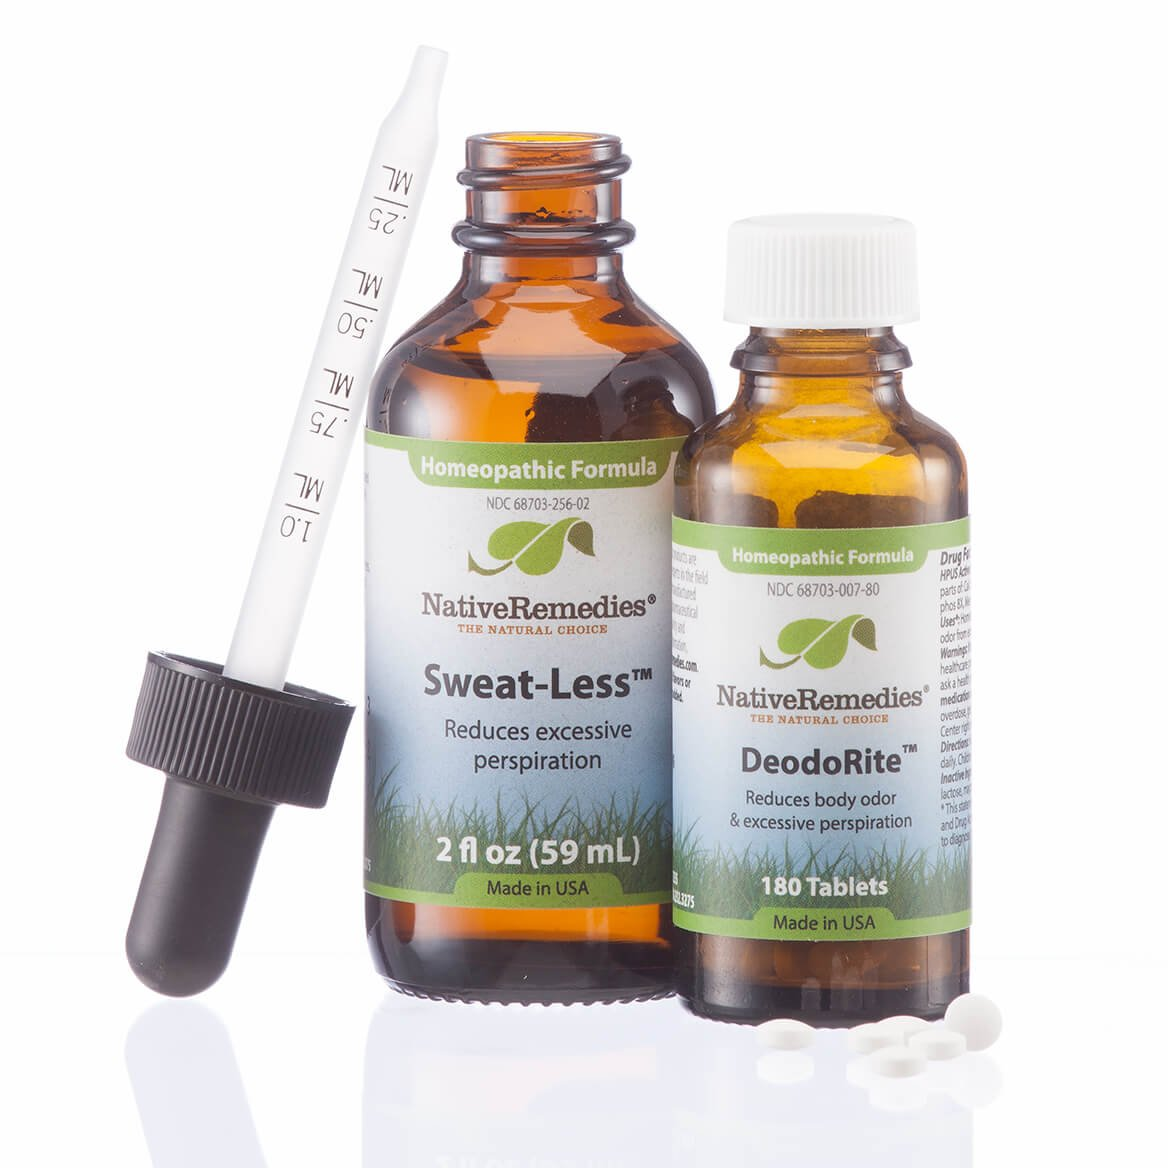 Native Remedies Sweat-Less and DeodoRite ComboPack